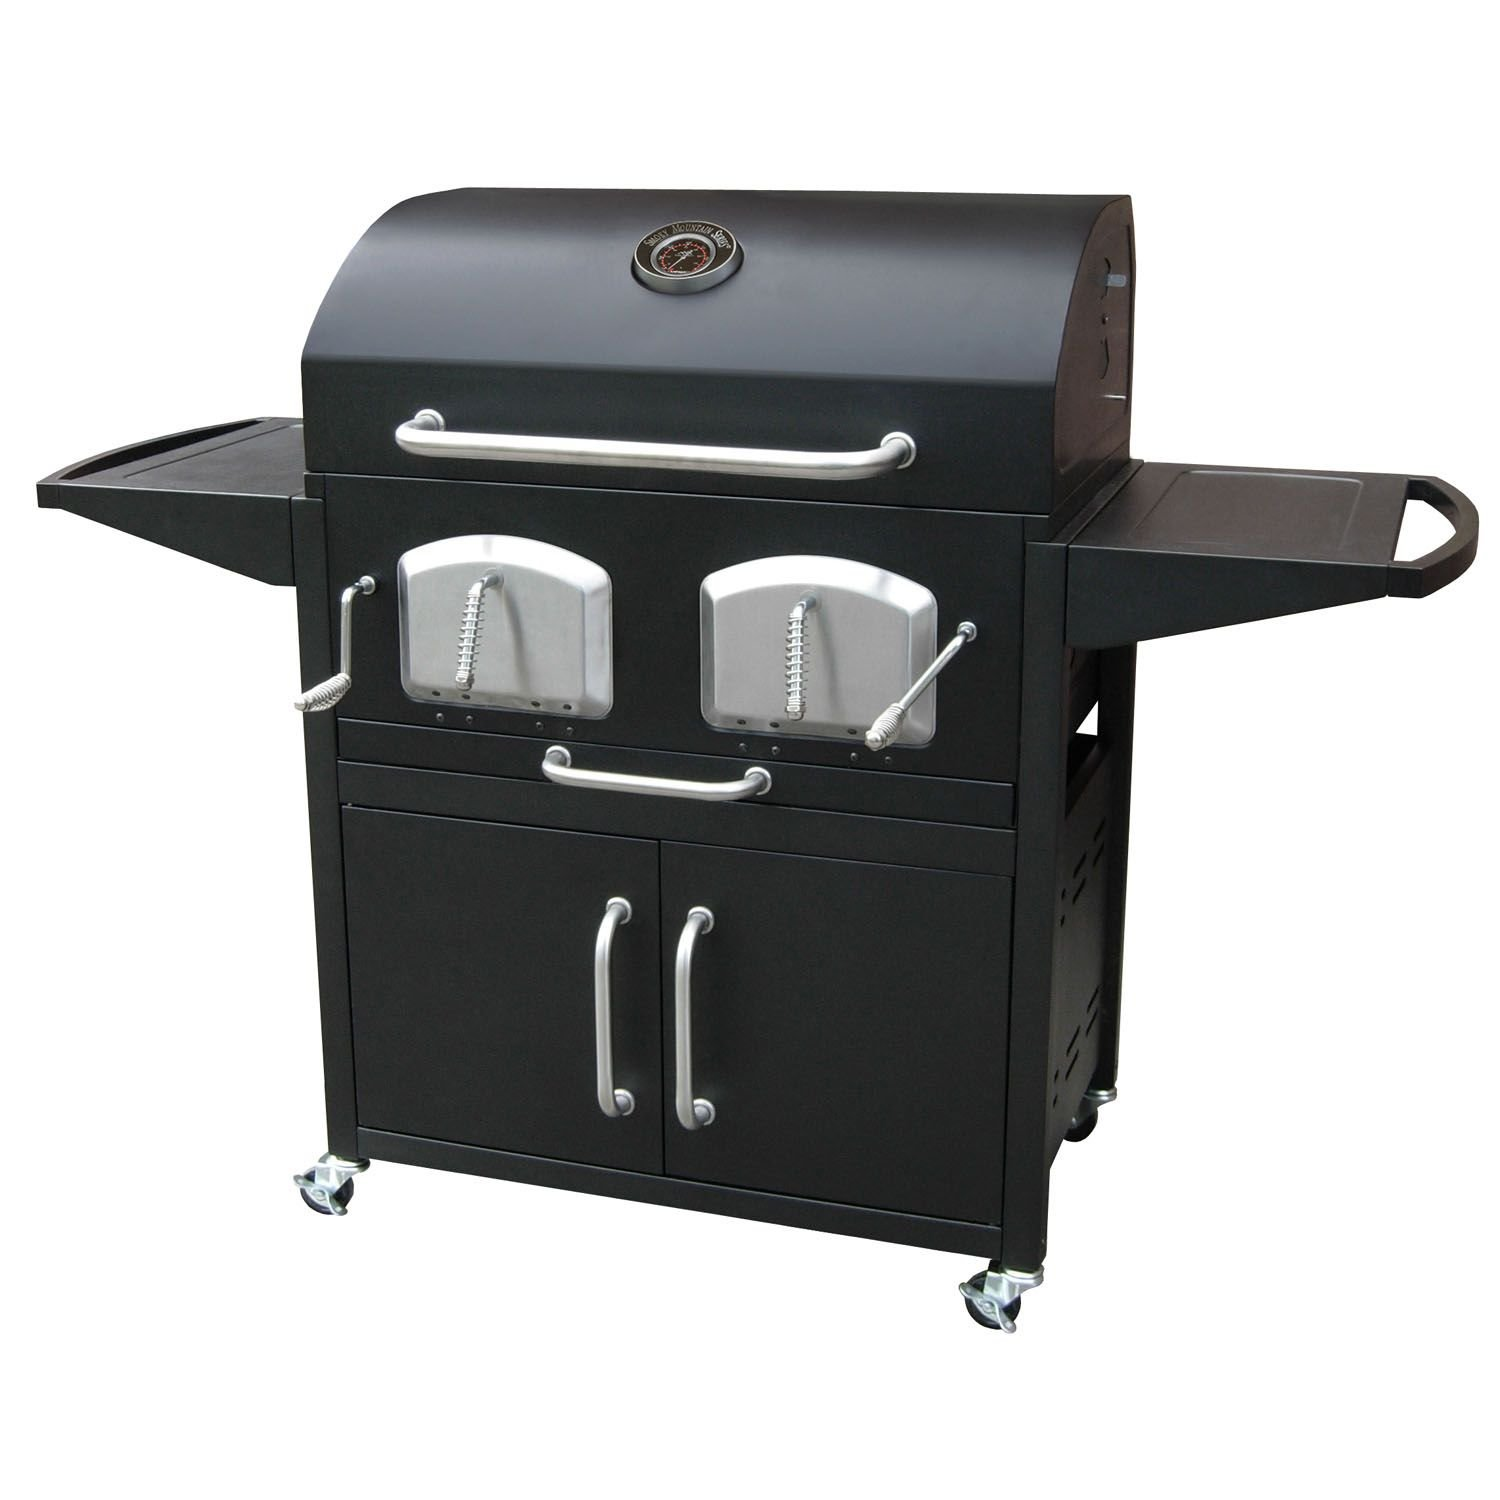 Smoky Mountain Series BRAVO Premium Charcoal Grill